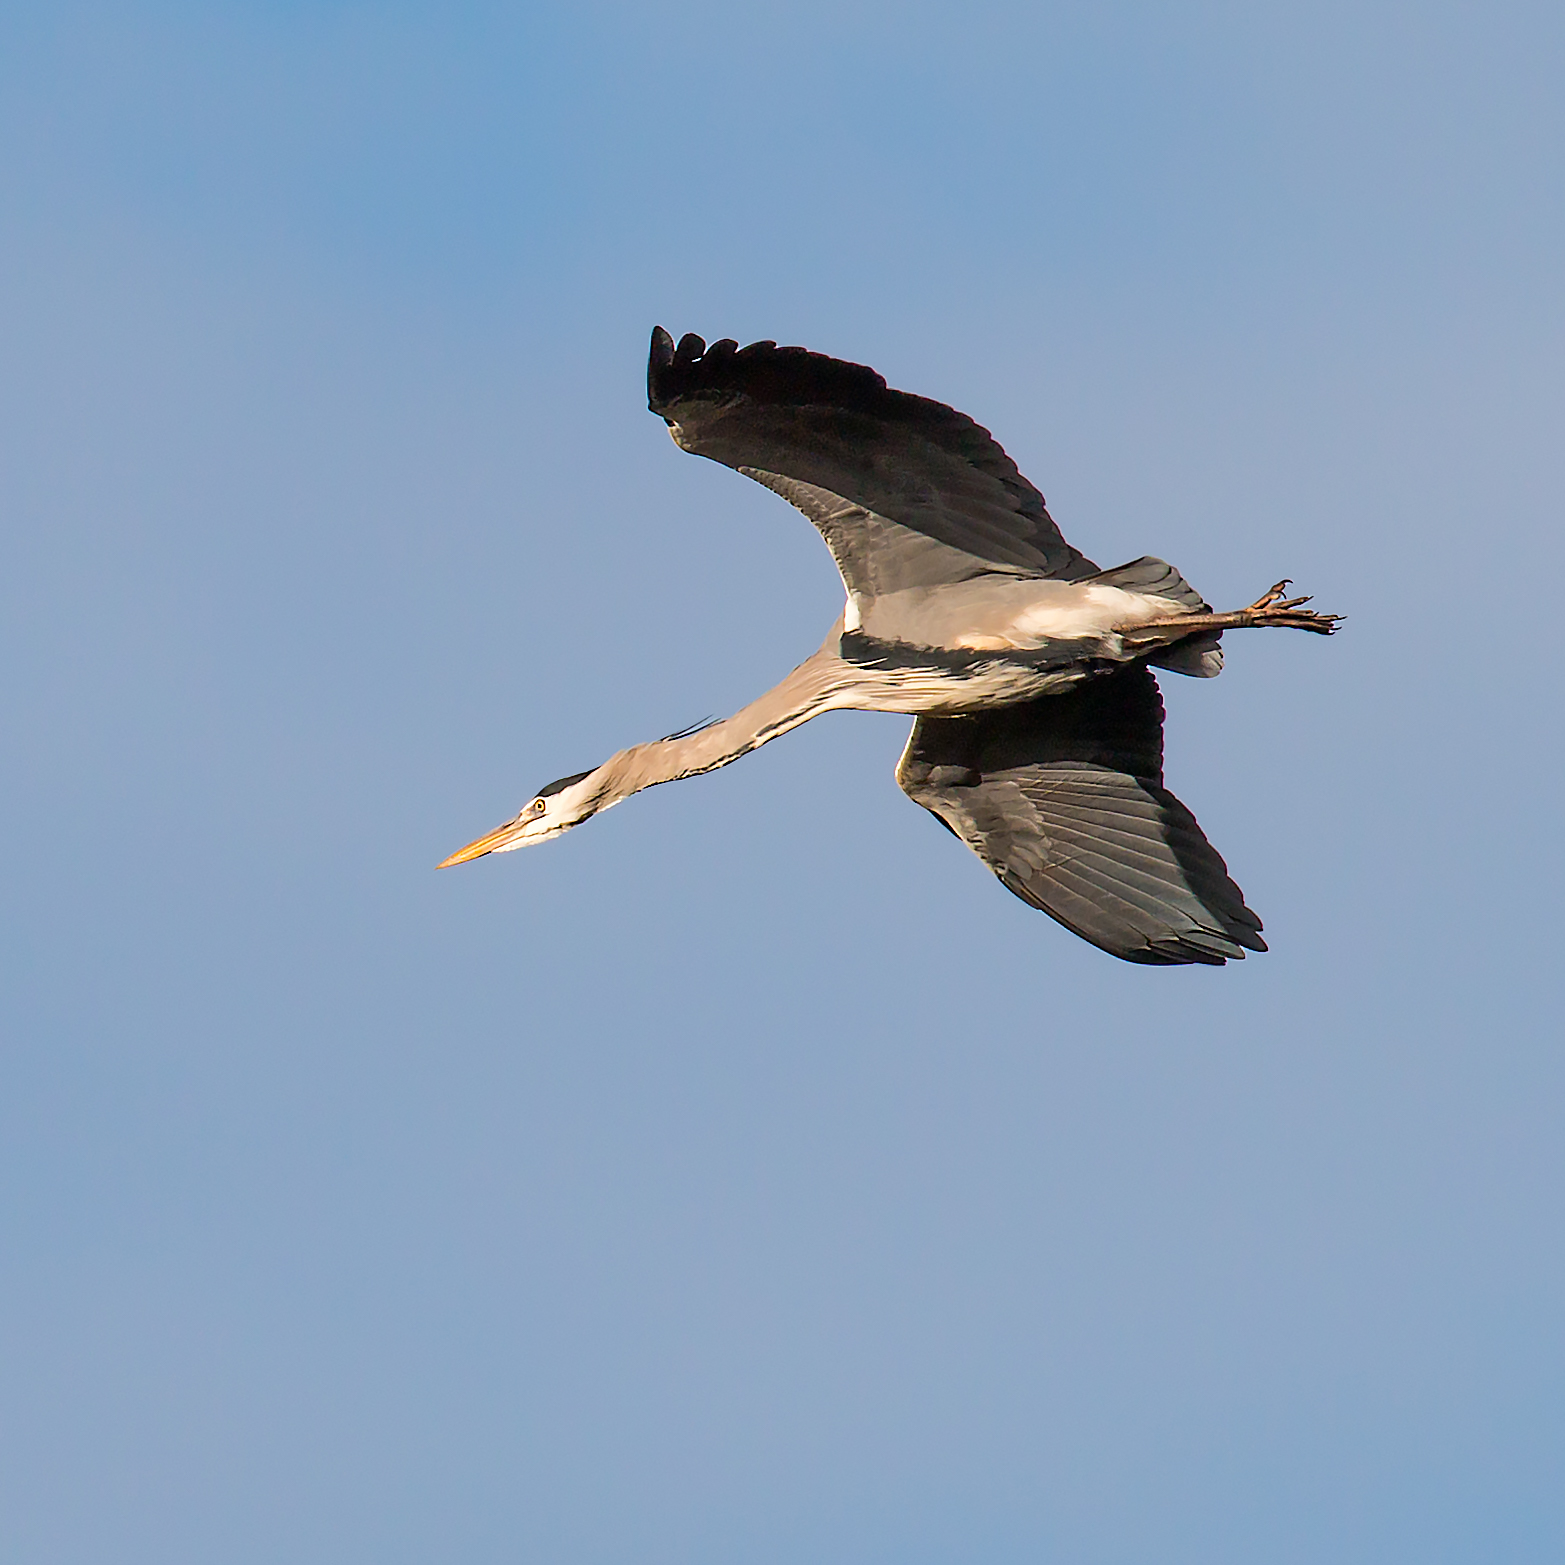 Grey Heron extending its neck